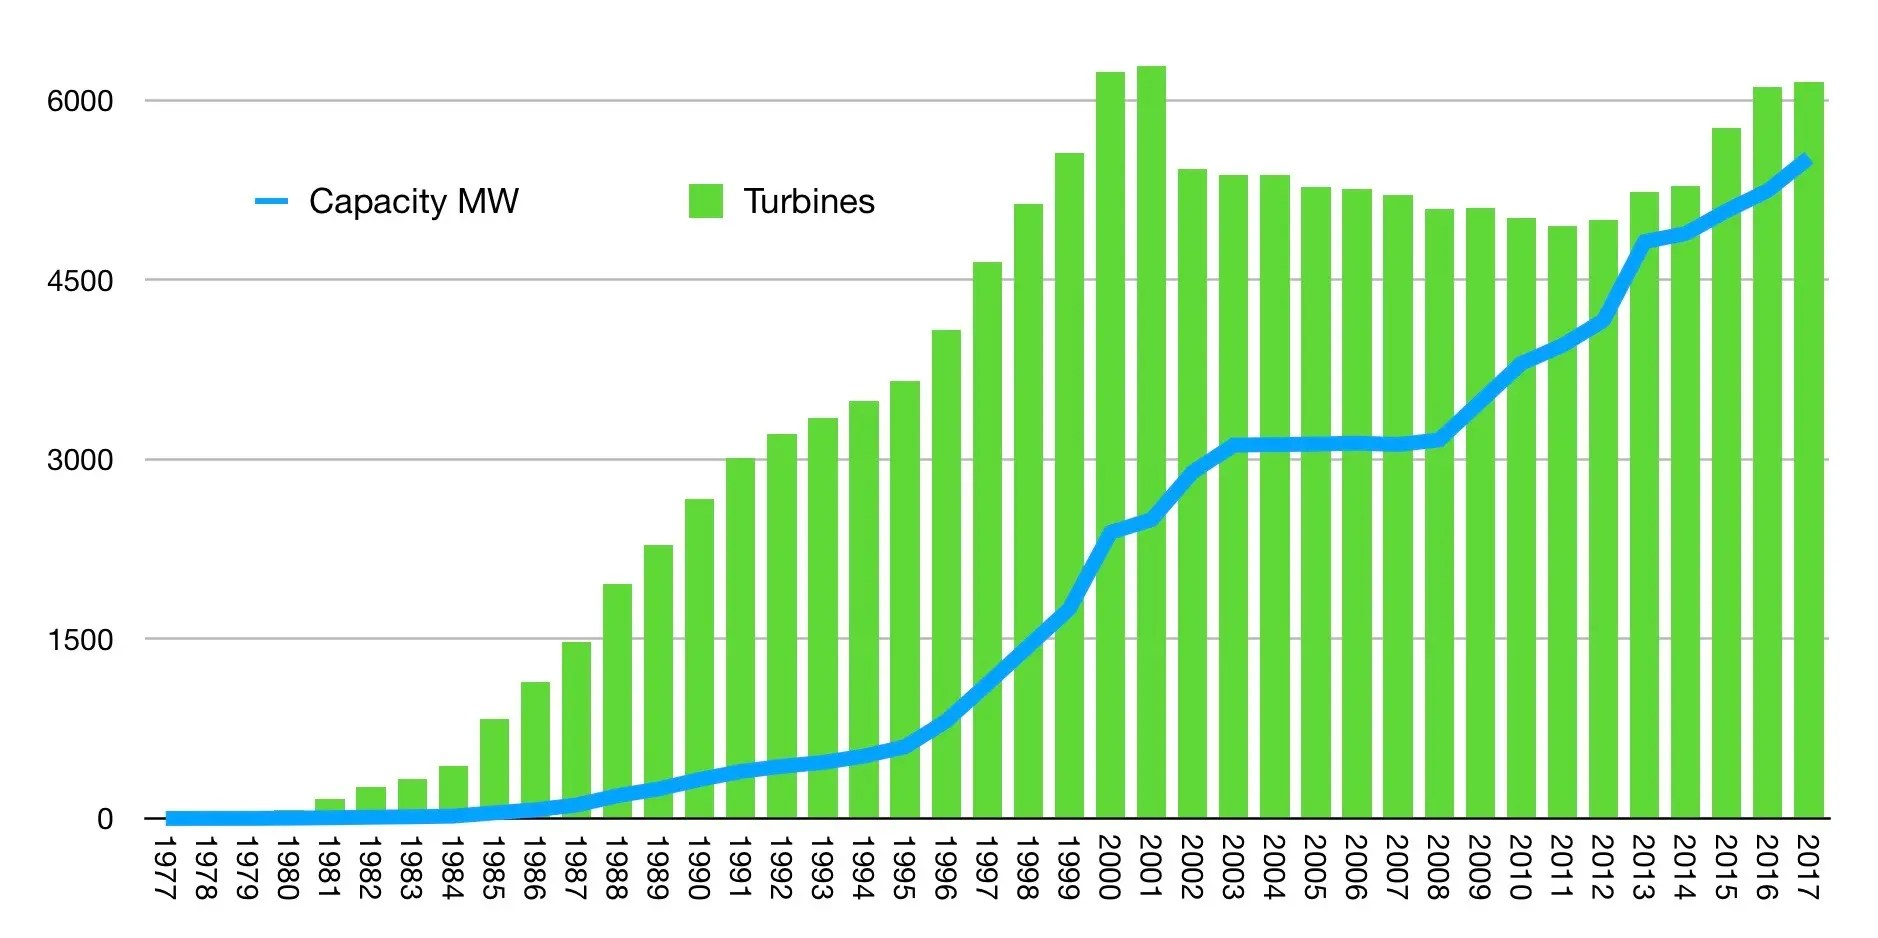 hight resolution of graph by jesper berggreen data source ens dk this means old turbines